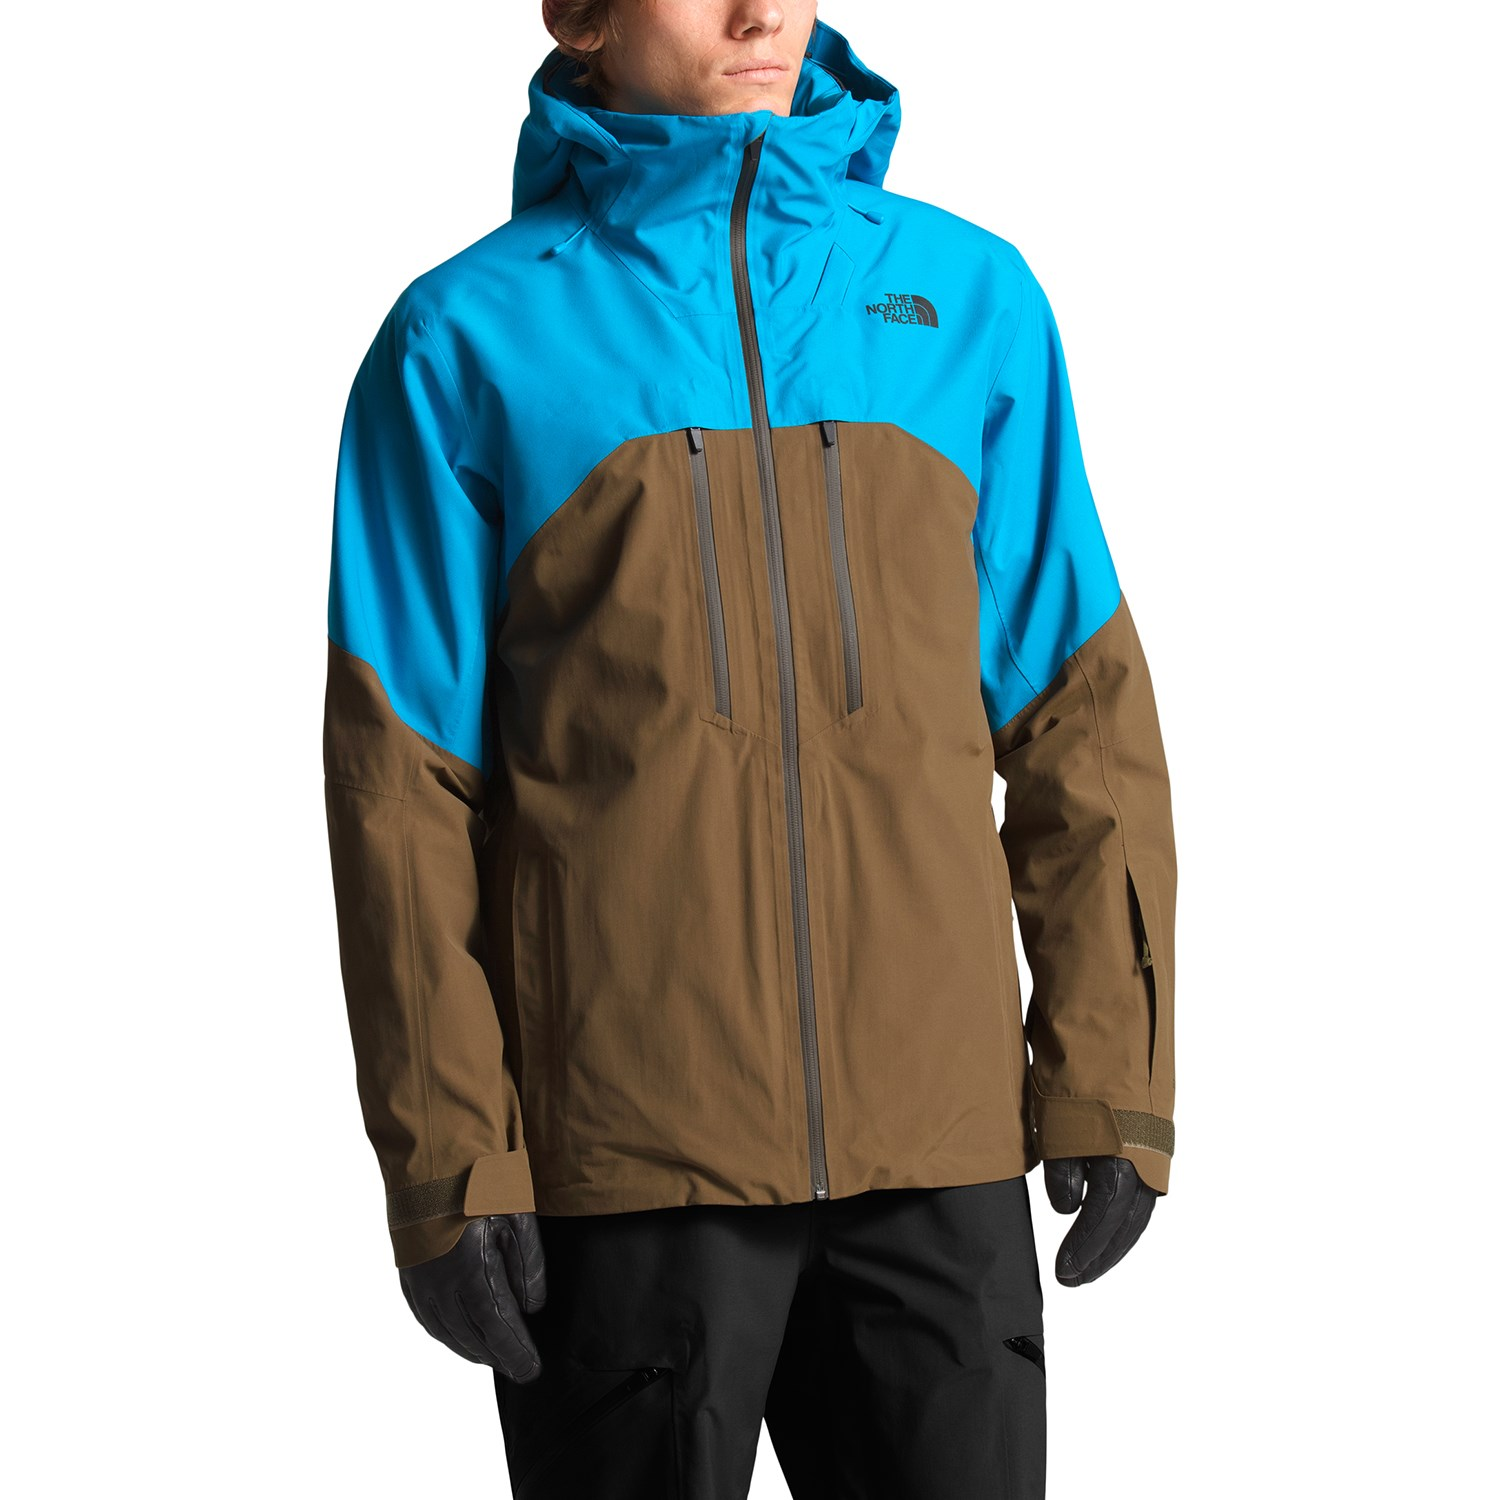 7b2e229b941d The North Face Powder Guide Jacket